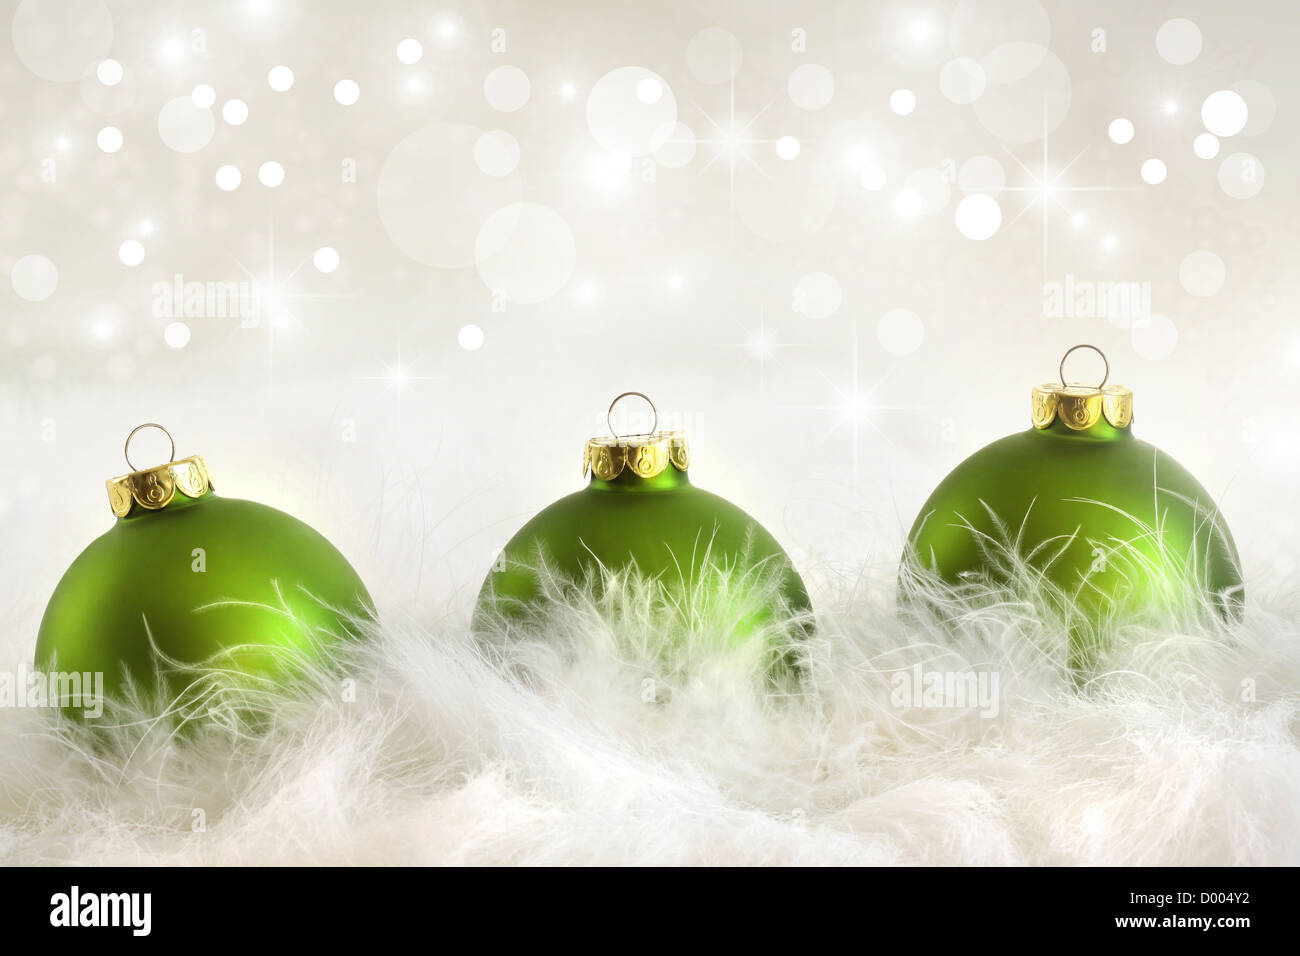 Green christmas balls with holiday background - Stock Image